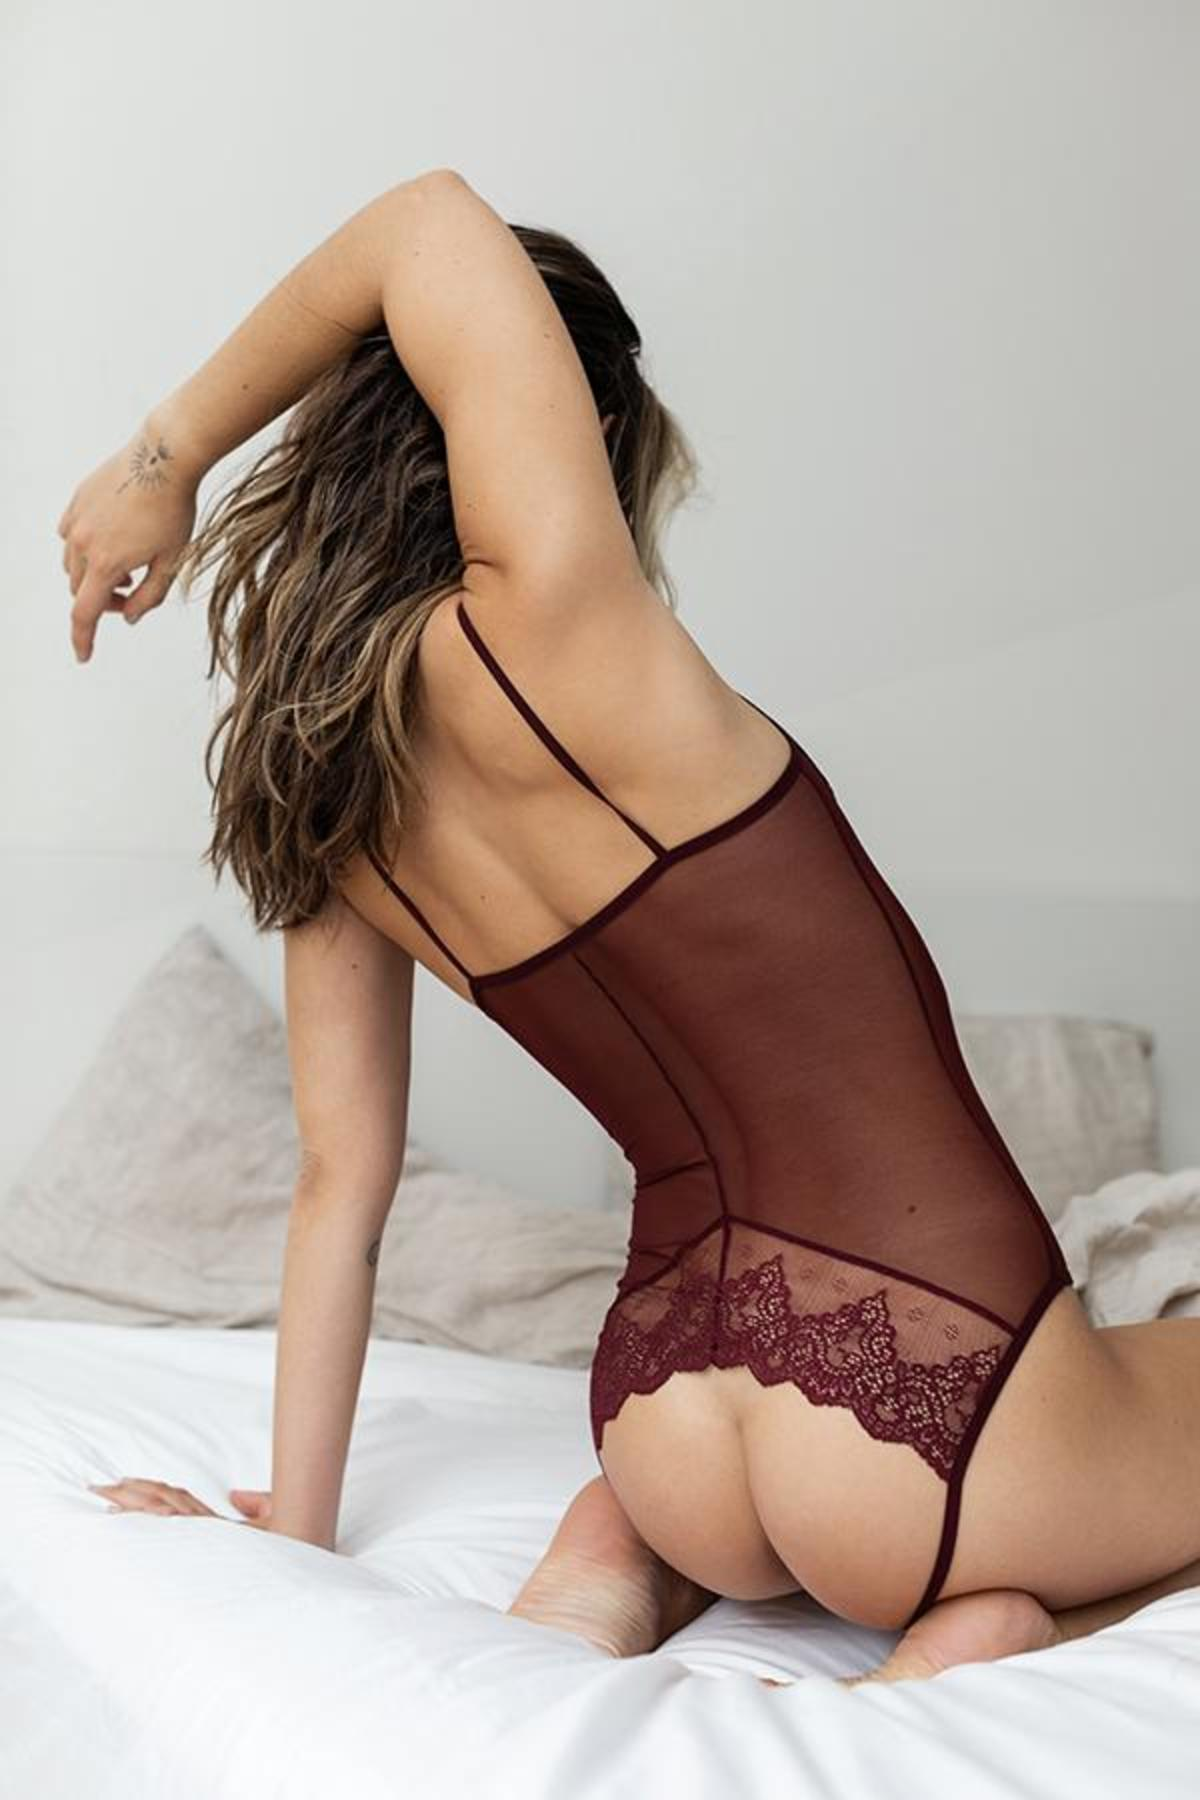 Only-Hearts-Whisper-Sweet-Nothings-Coucou-Bodysuit---Black-Cherry-20210312225256